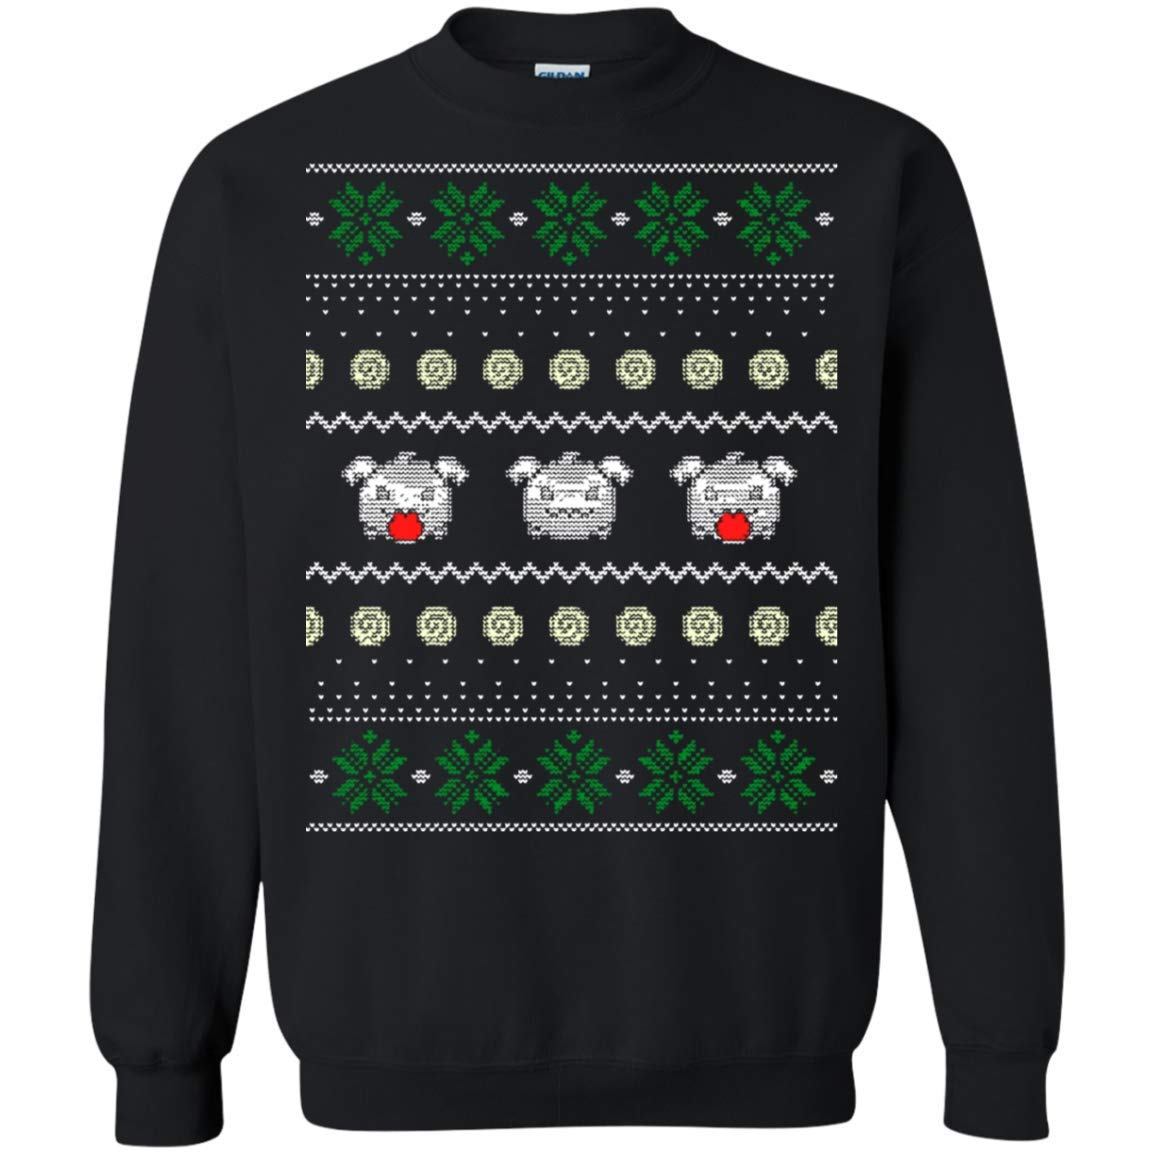 Poro Ugly Christmas Sweater League Of Legends Inspired Christmas Gamer Jumper League Ugly Sweater